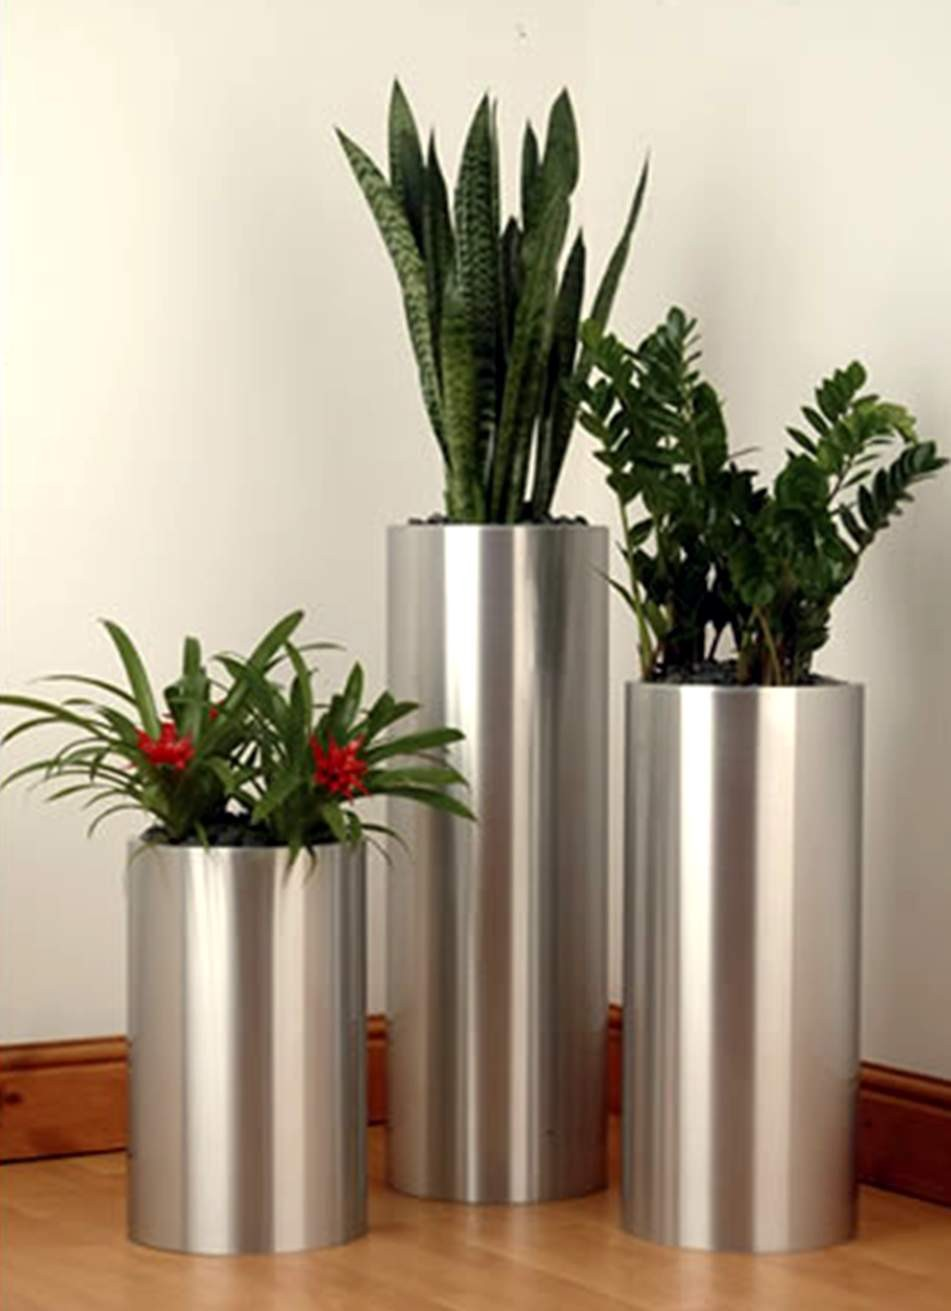 Duqaacom Round Silver Tall Planter Set of 3 Pcs infoduqaacom